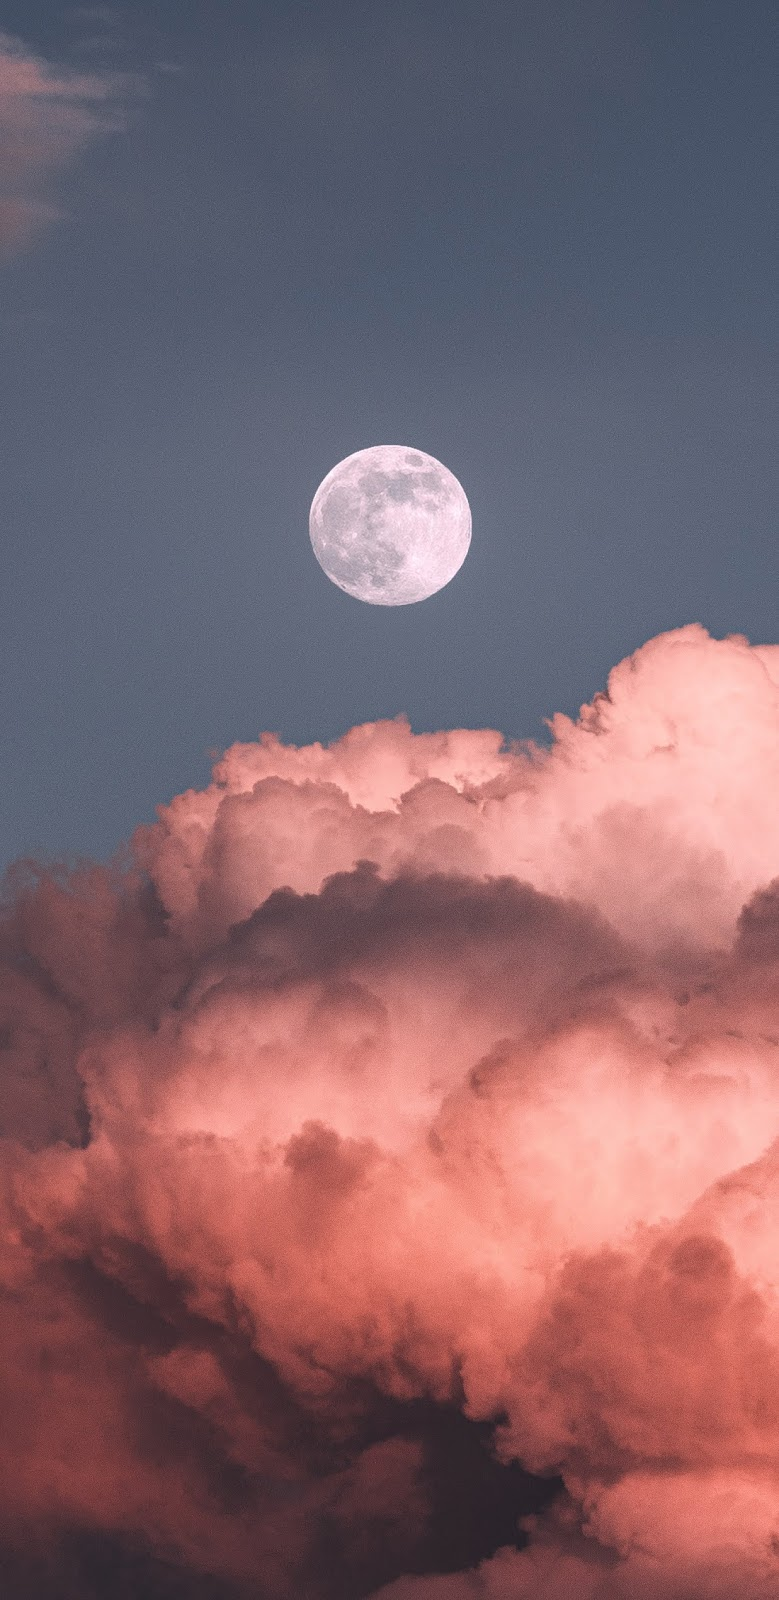 Moon in the pink sky